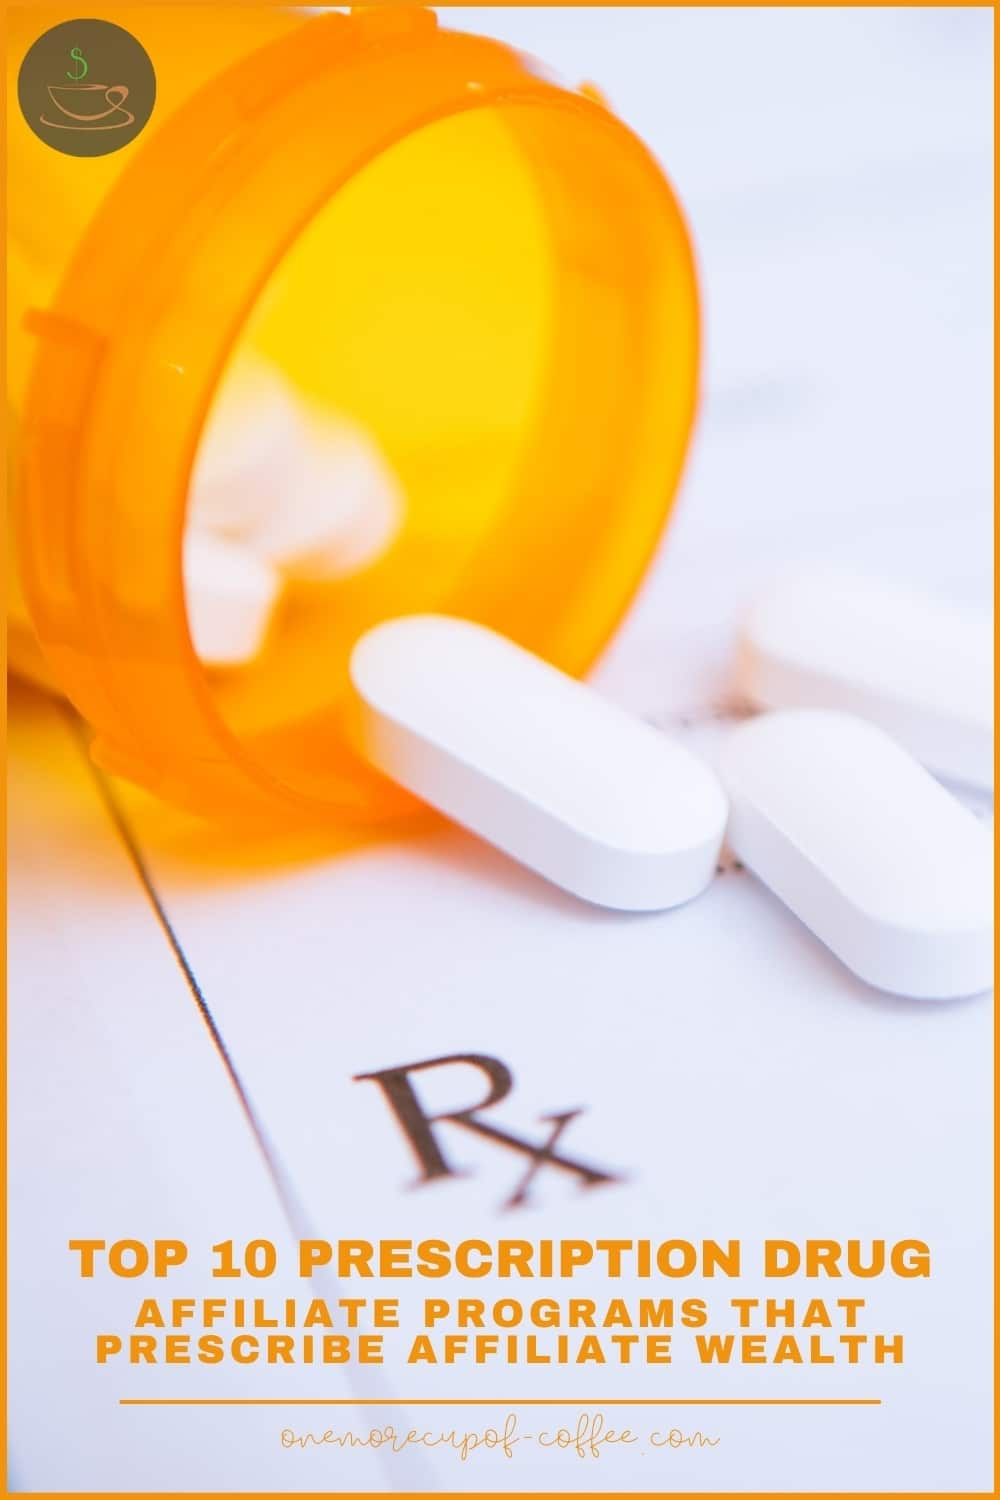 closeup image of a prescription  and pills pouring out of a yellow orange pills container